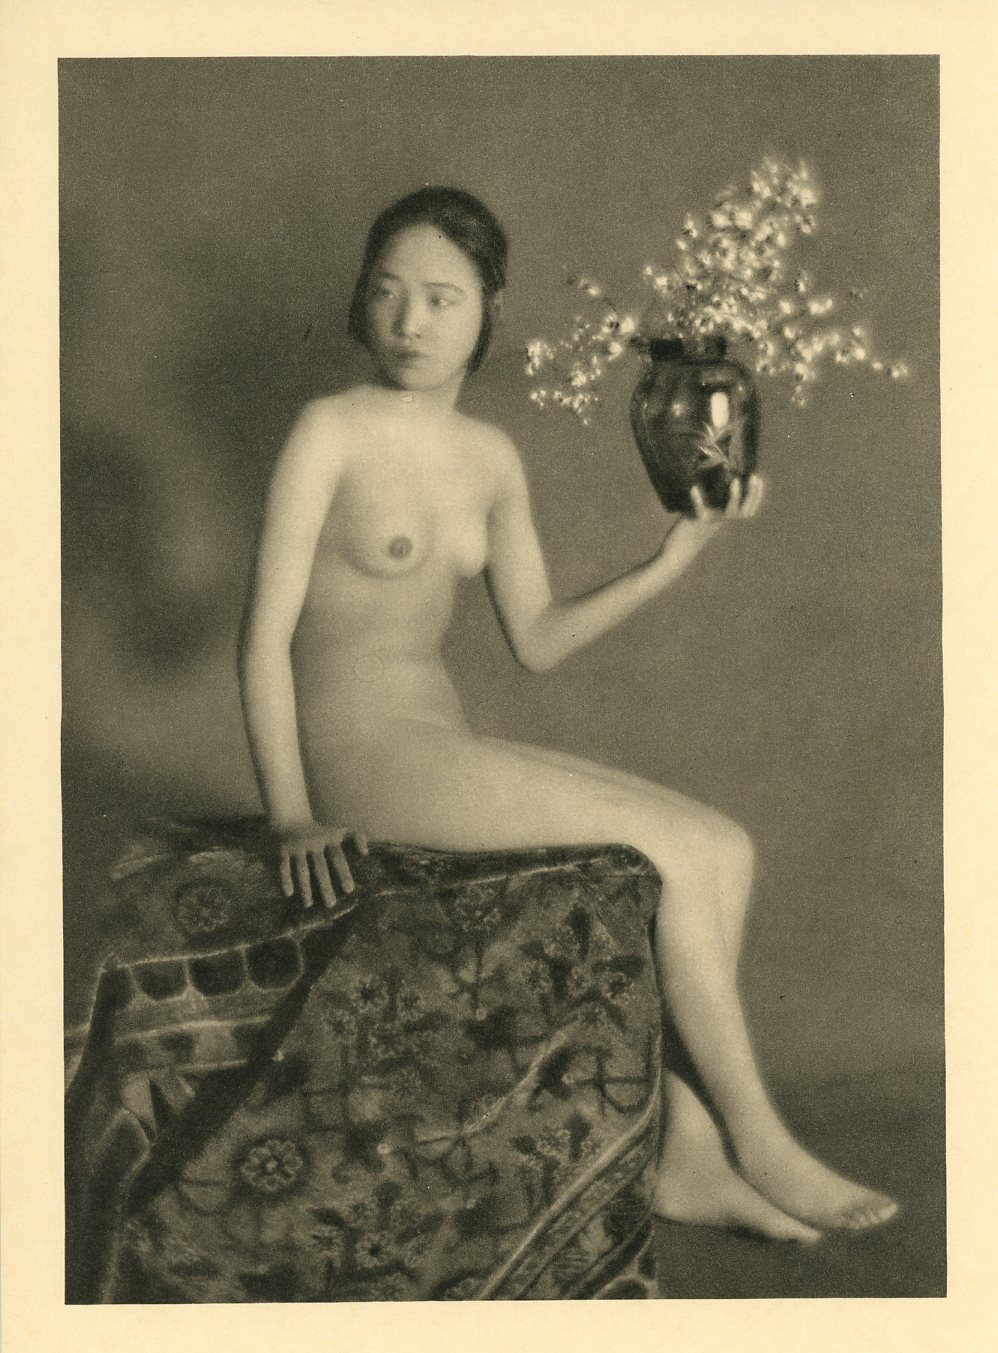 Heinz von perckhammer the culture of the nude in china nus nus heinz von perckhammer the culture of the nude in china nus nus kristyandbryce Images